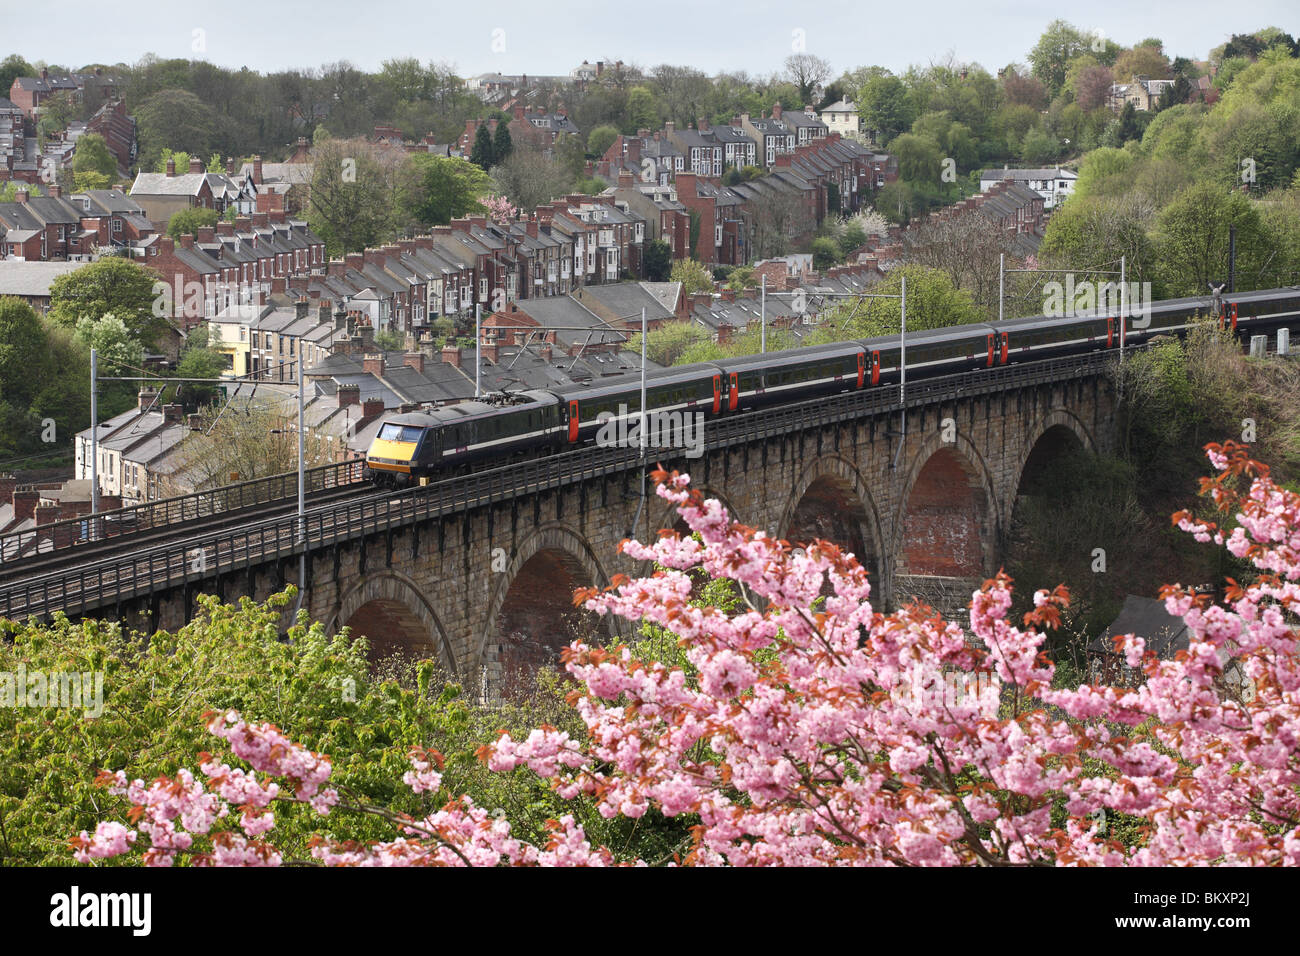 East Coast express passenger electric train crossing the railway viaduct at Durham, England, UK Stock Photo